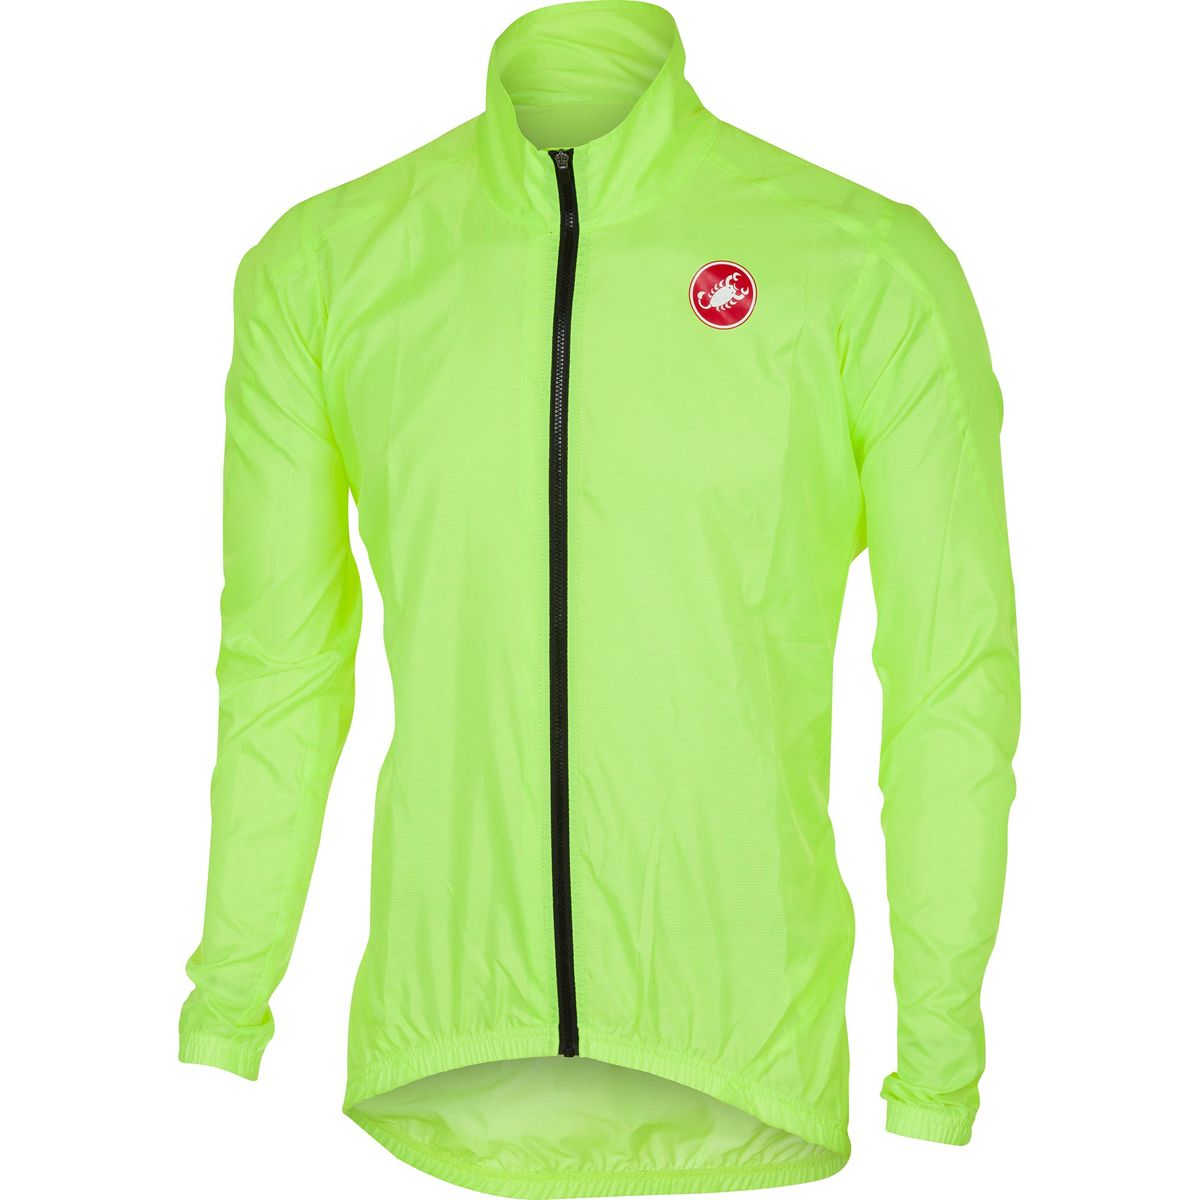 SQUADRA ER JACKET Windproof